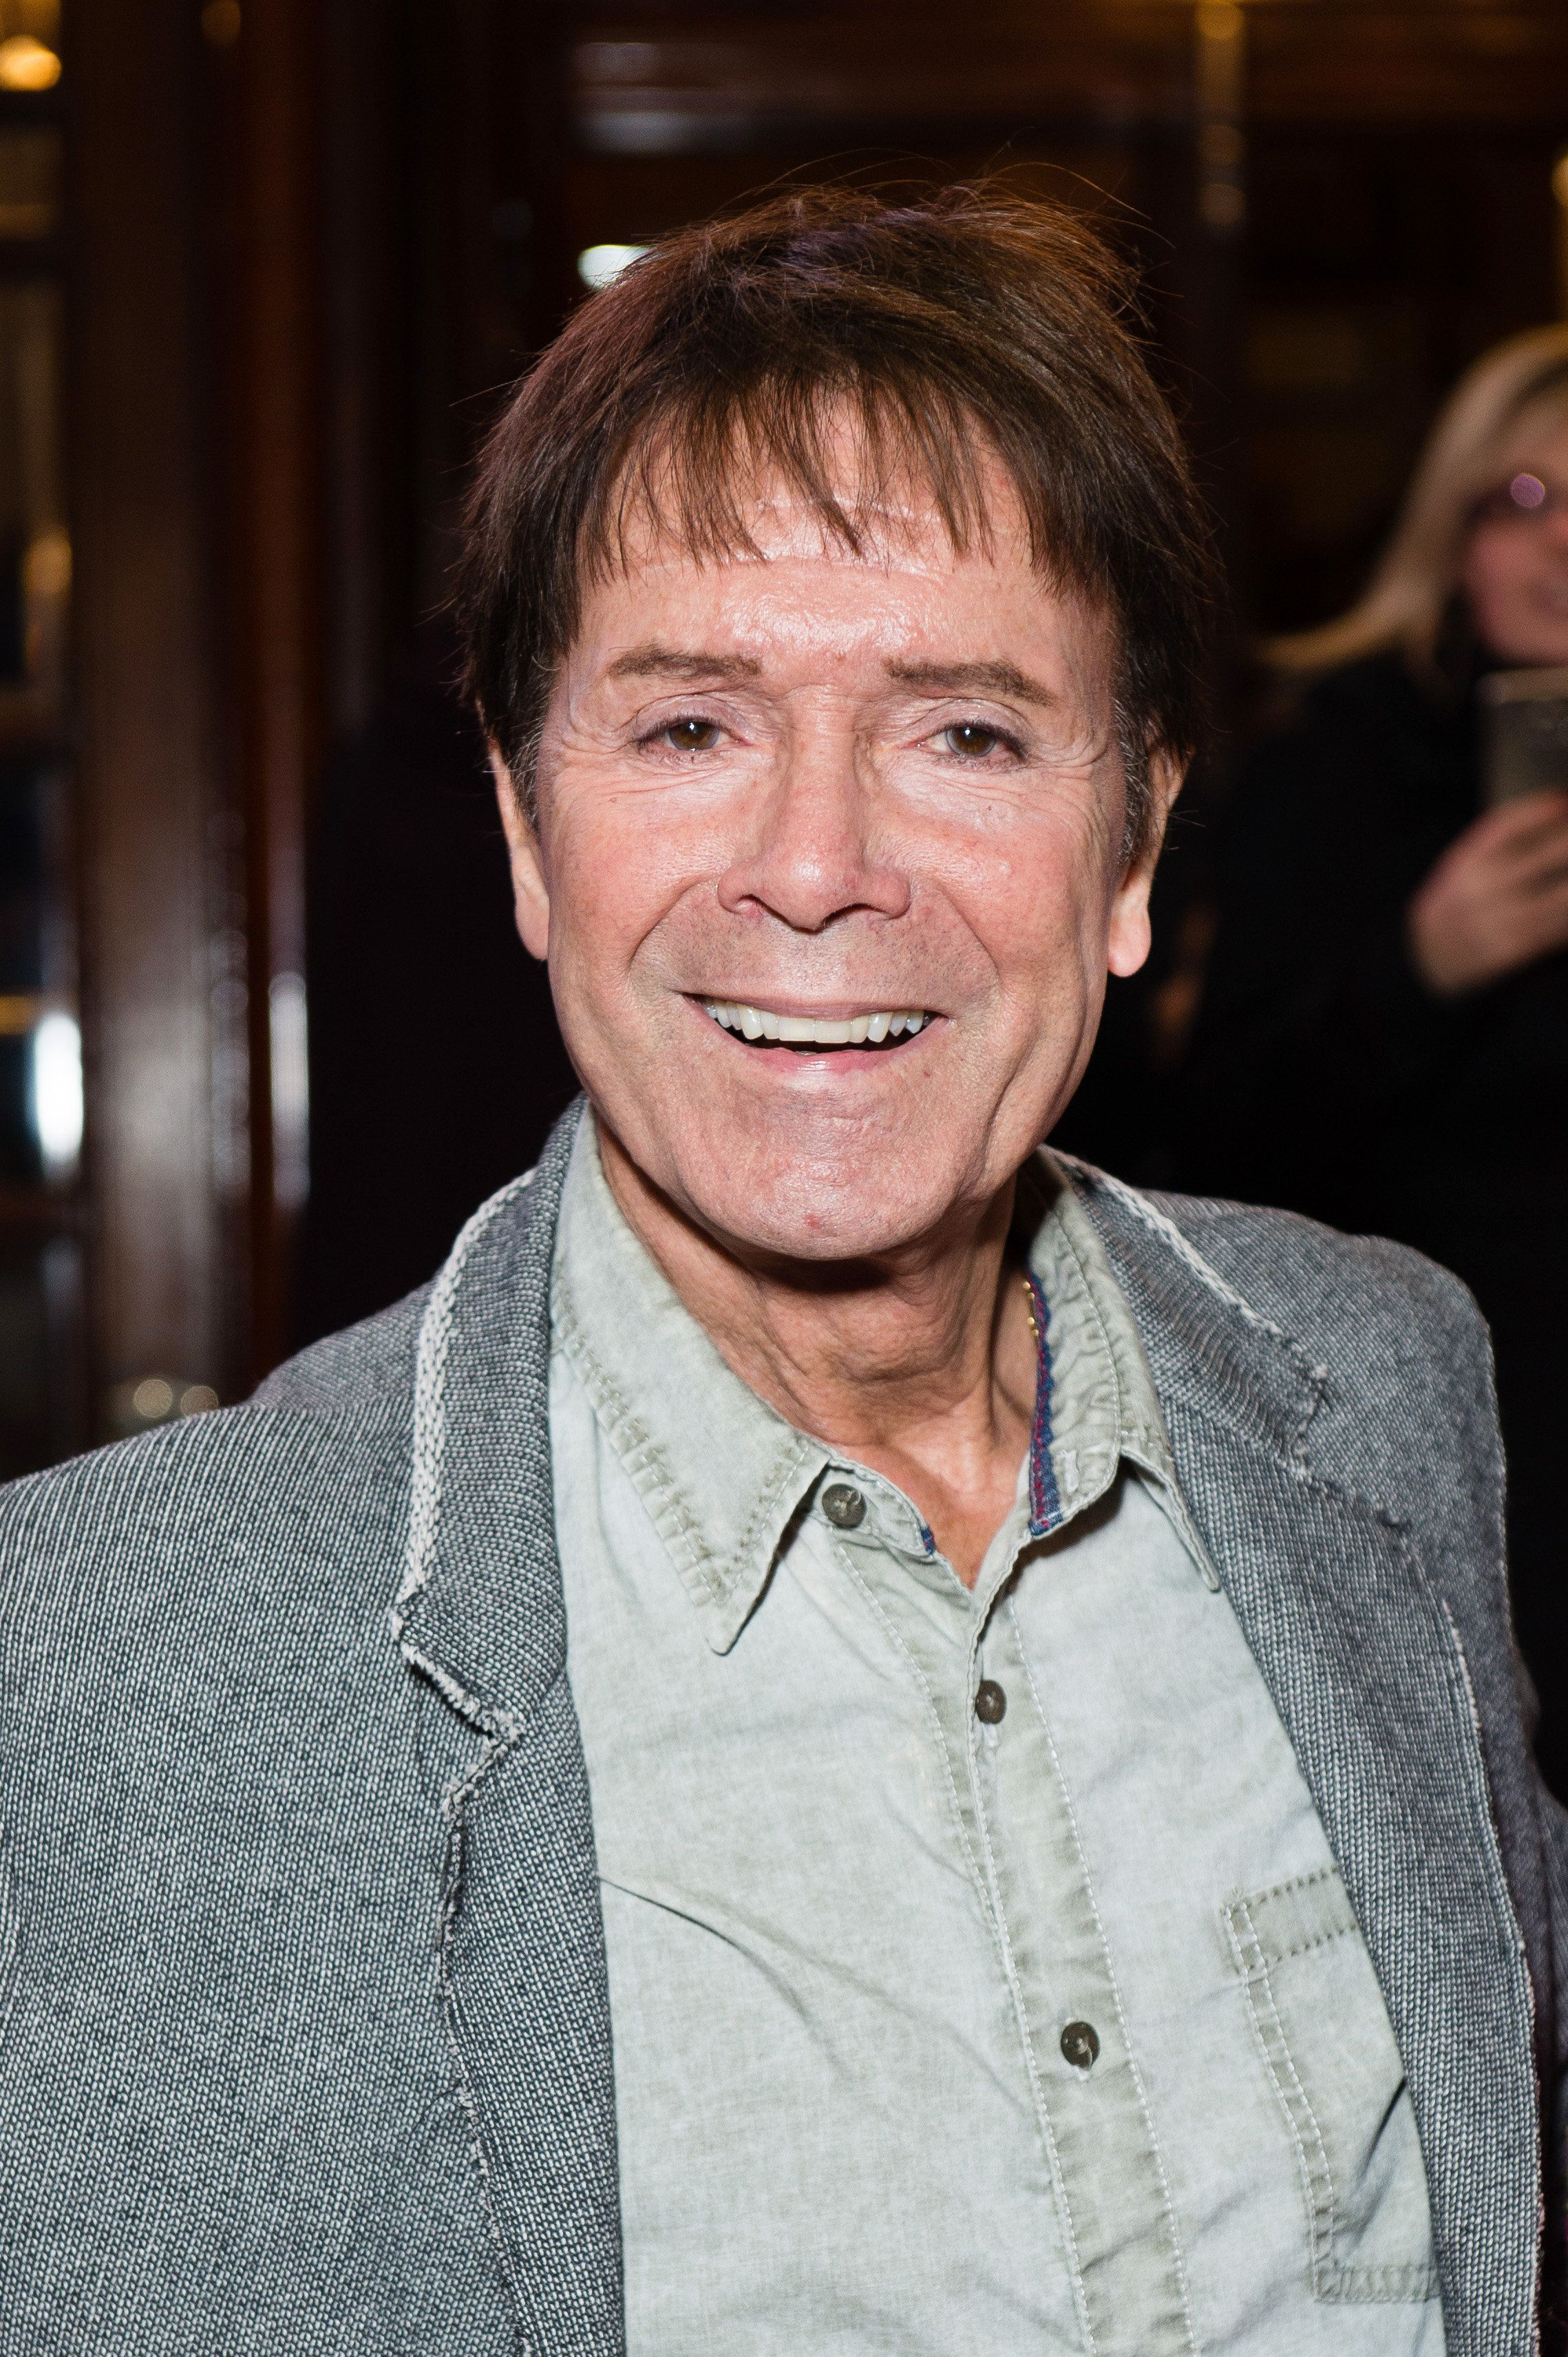 Cliff Richard Reveals 'Faith Even Stronger' Following Sexual Abuse